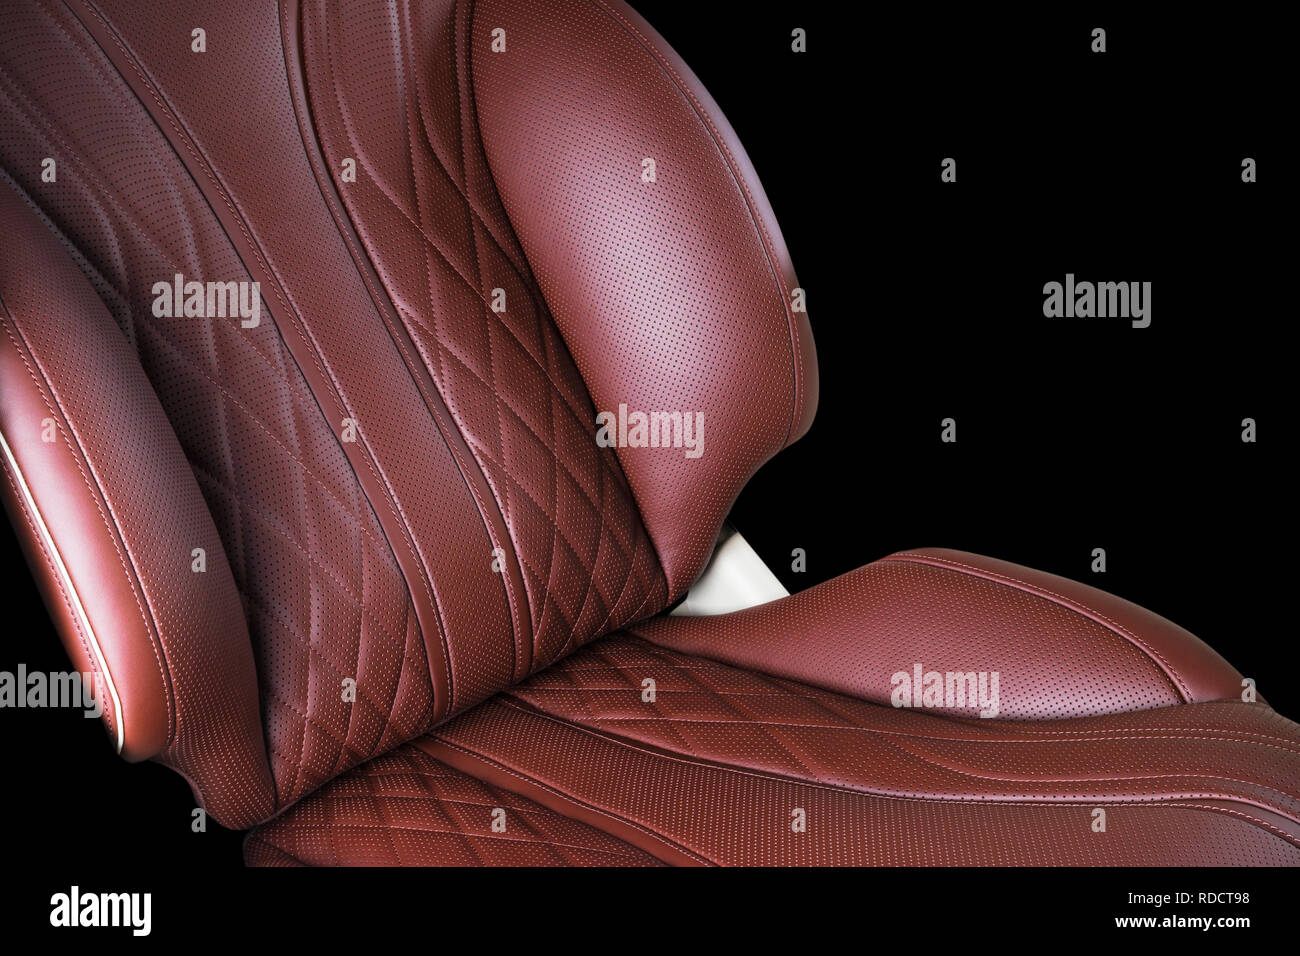 Brown Leather Interior Of The Luxury Modern Car Perforated